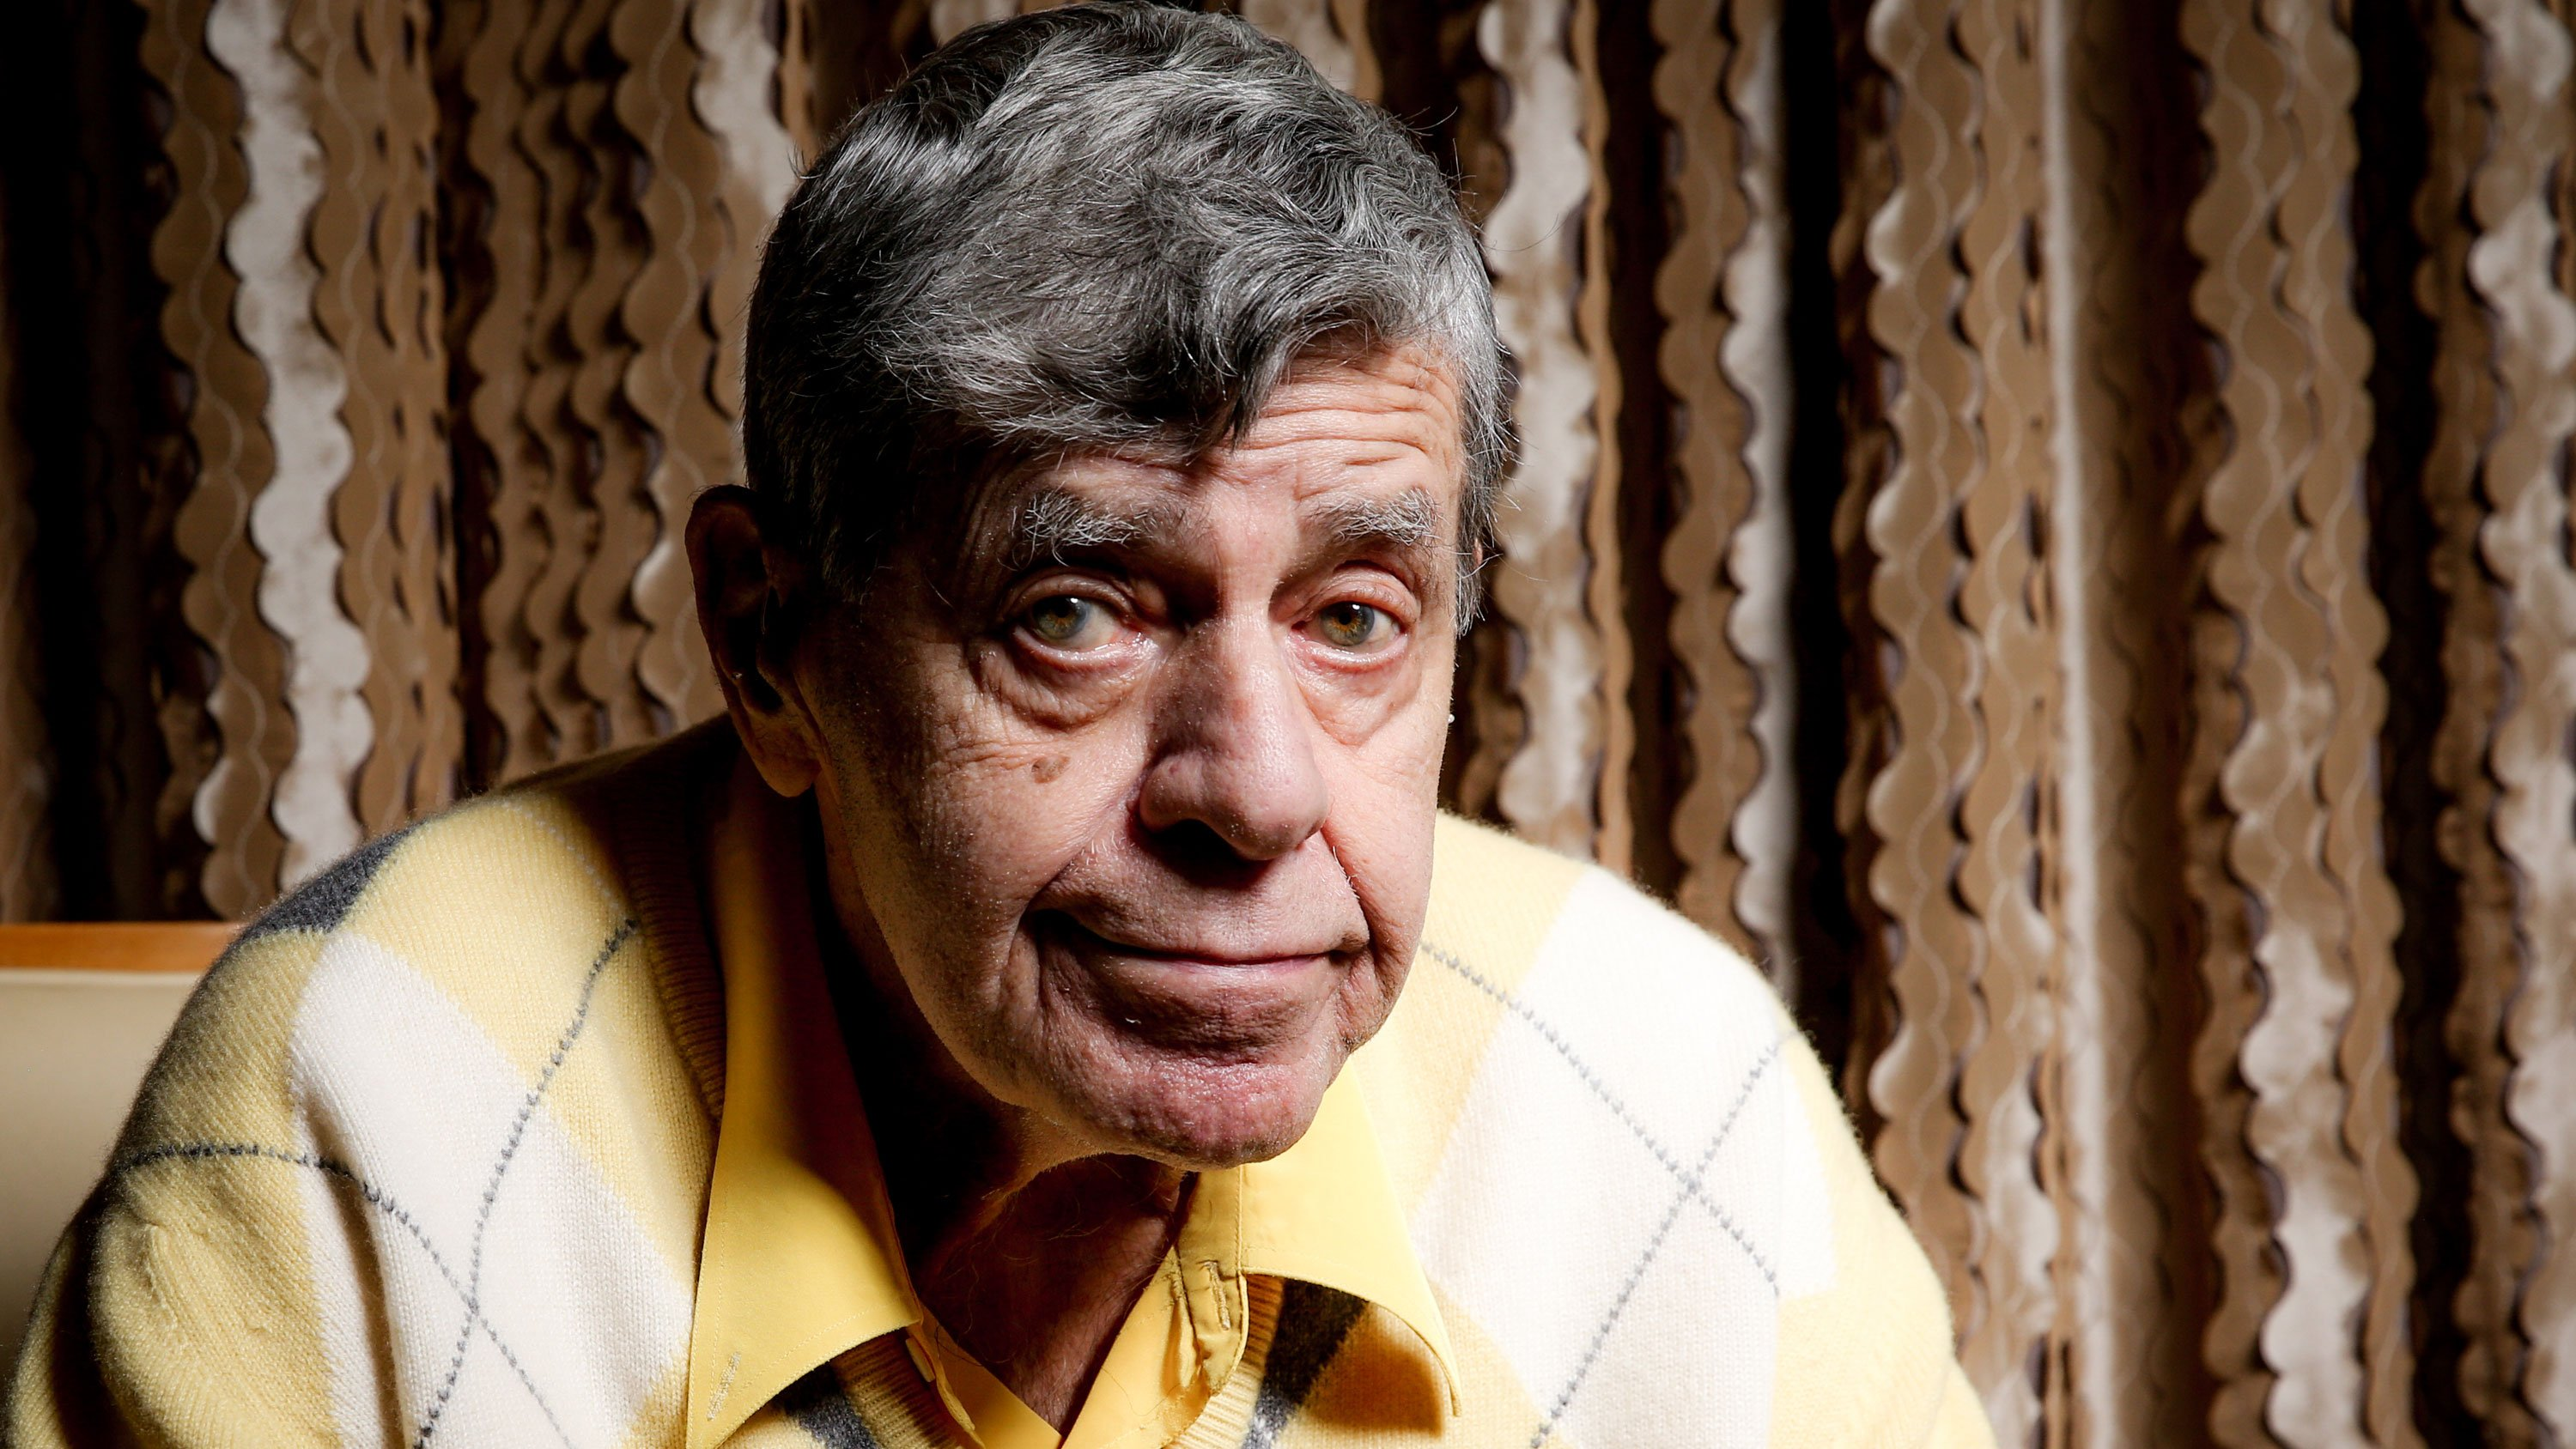 Jerry Lewis reacts during an interview at the Four Seasons Hotel in Los Angeles on Aug, 24, 2016. (AP image)